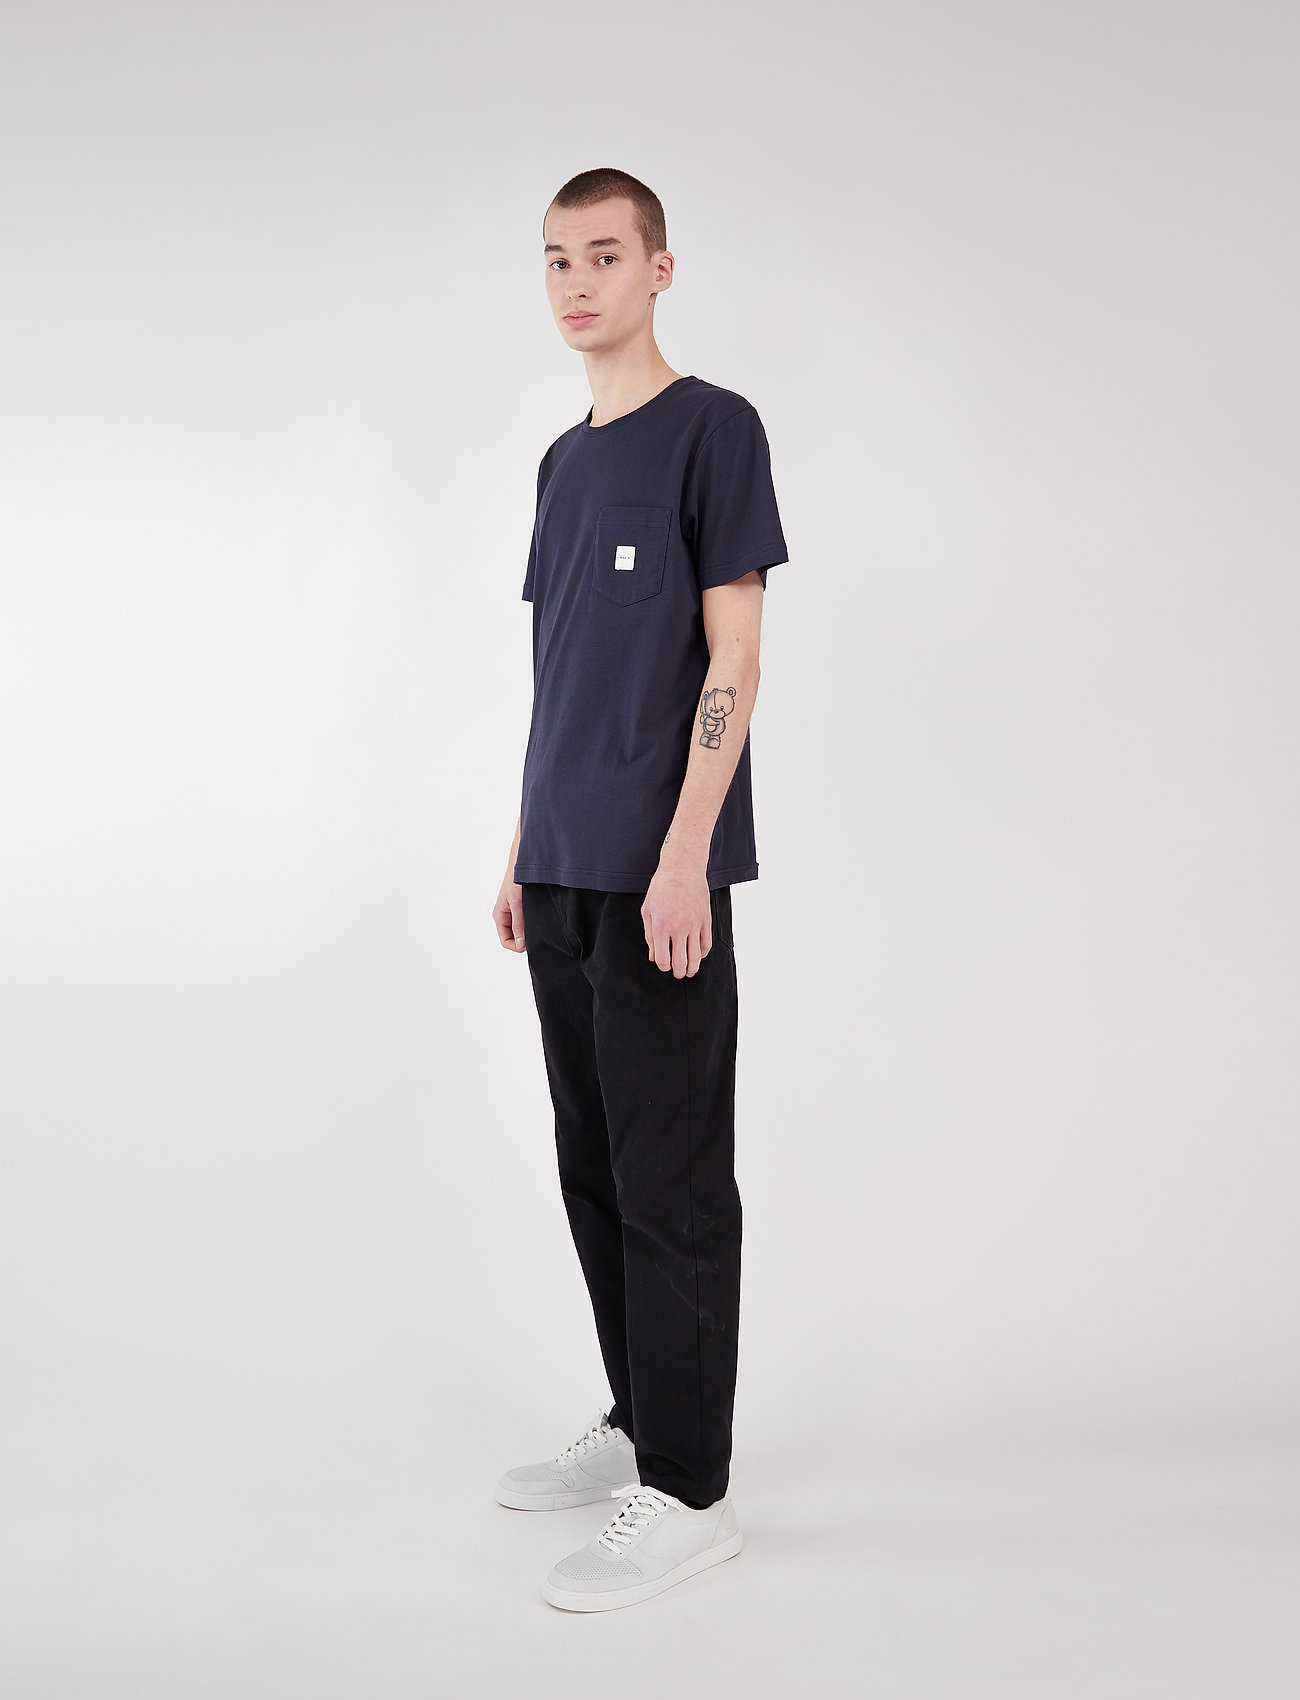 Square Pocket T-shirt (Dark Blue) (29.25 €) - Makia U1Fbg